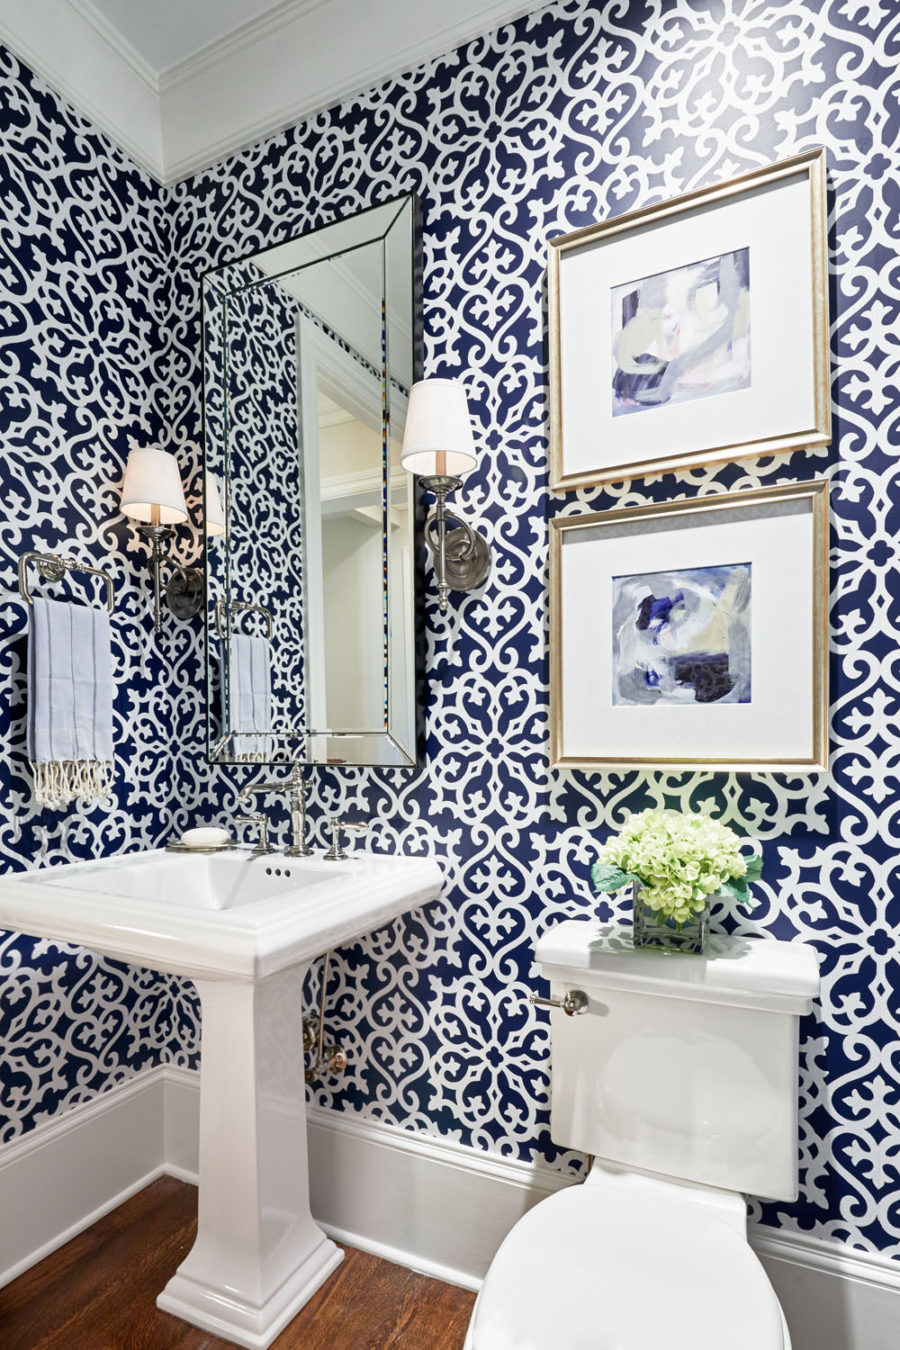 Patterned powder room design